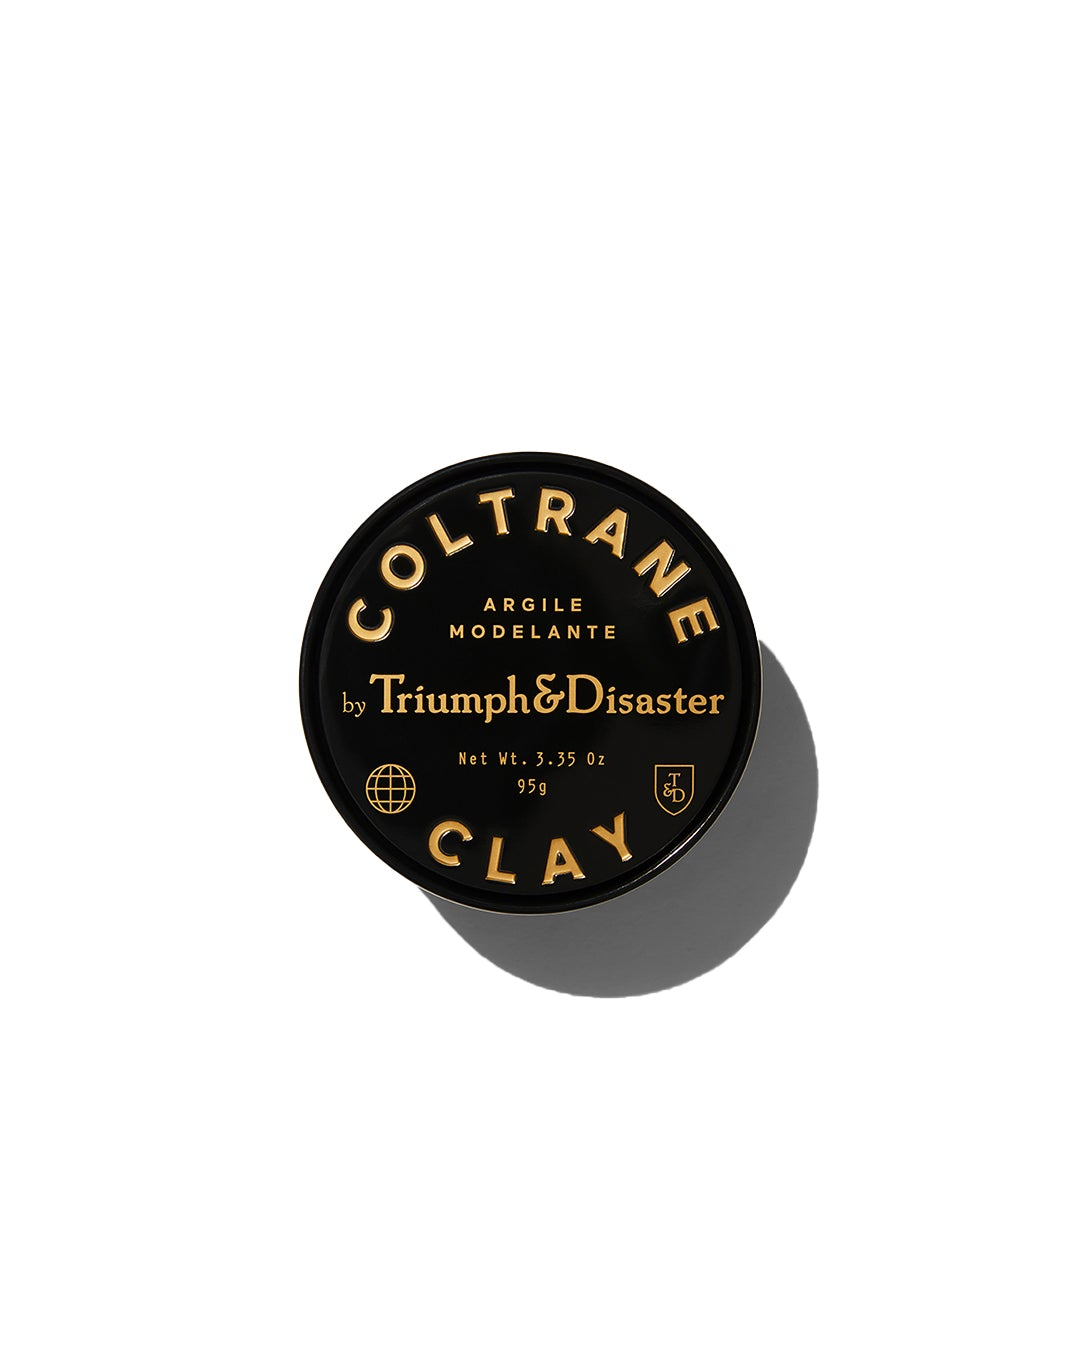 Triumph & Disaster Coltrane Clay hair product in black jar with gold text on white background